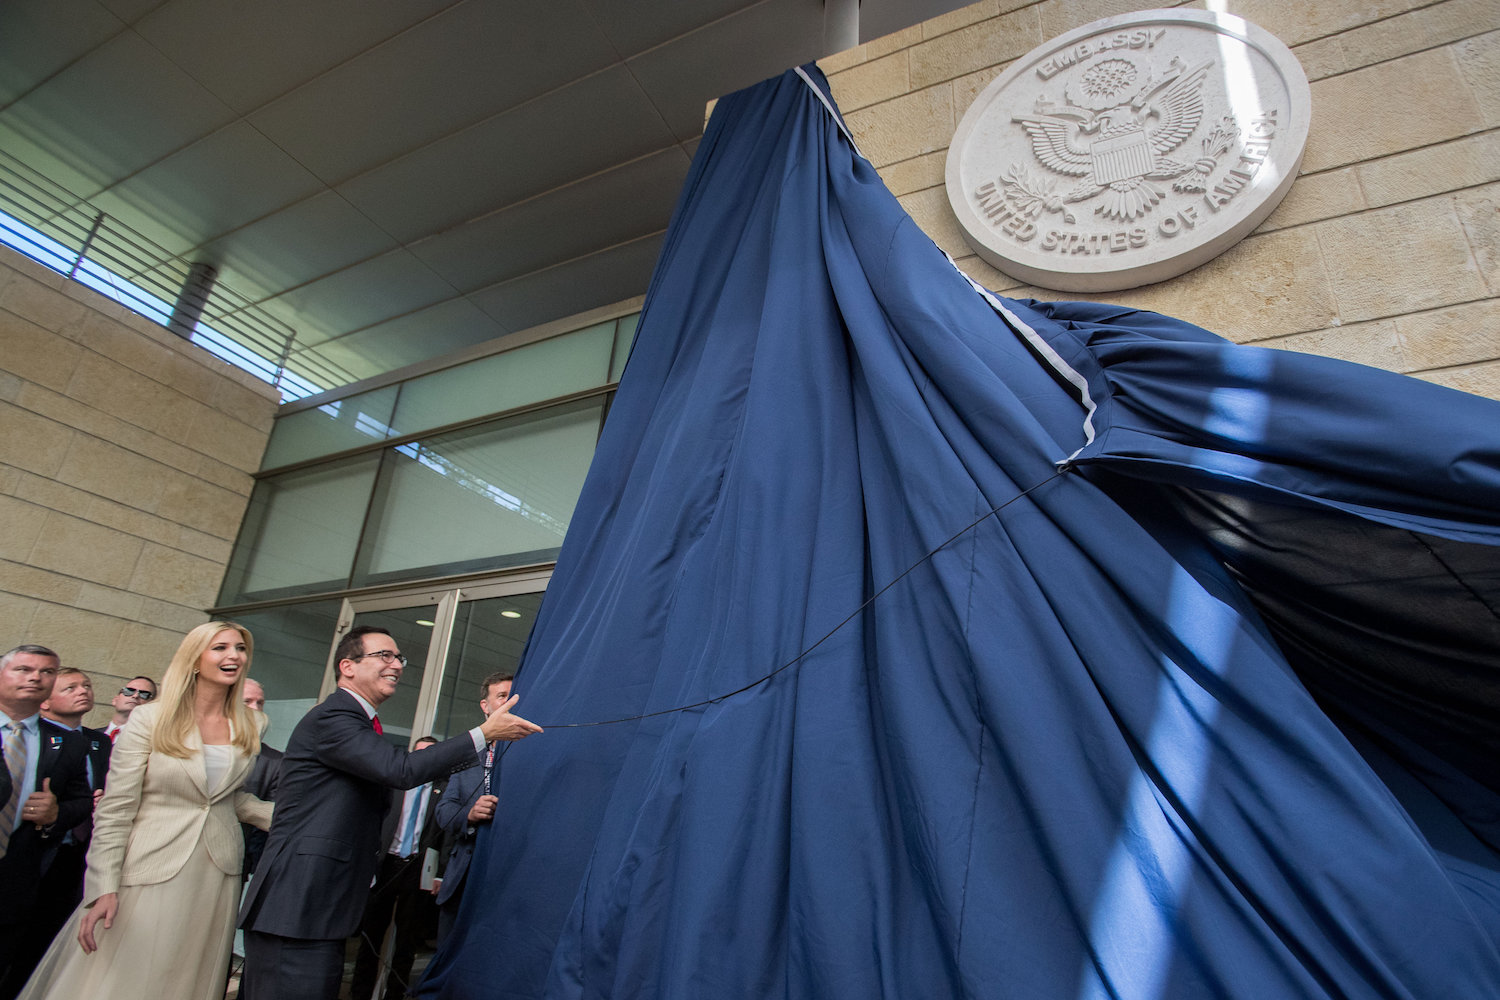 U.S. Secretary of the Treasury Steven Munchin and daughter of President Donald Trump, Ivanka Trump, reveal a dedication plaque at the official opening ceremony of the U.S. Embassy, Jerusalem, May 14, 2018. (Yonatan Sindel/Flash90)